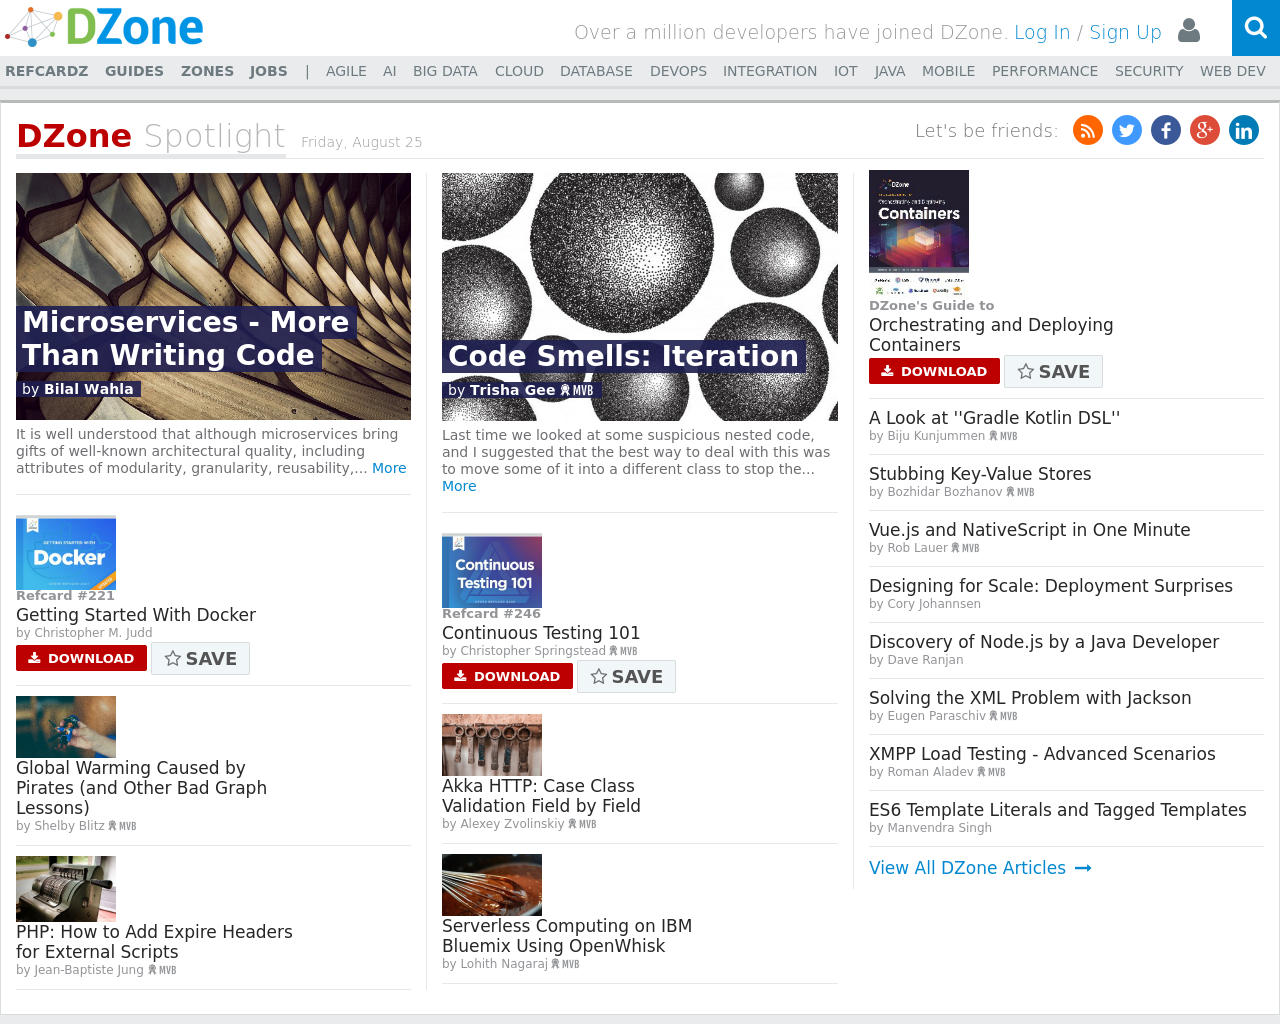 DZone-Advertising-Reviews-Pricing